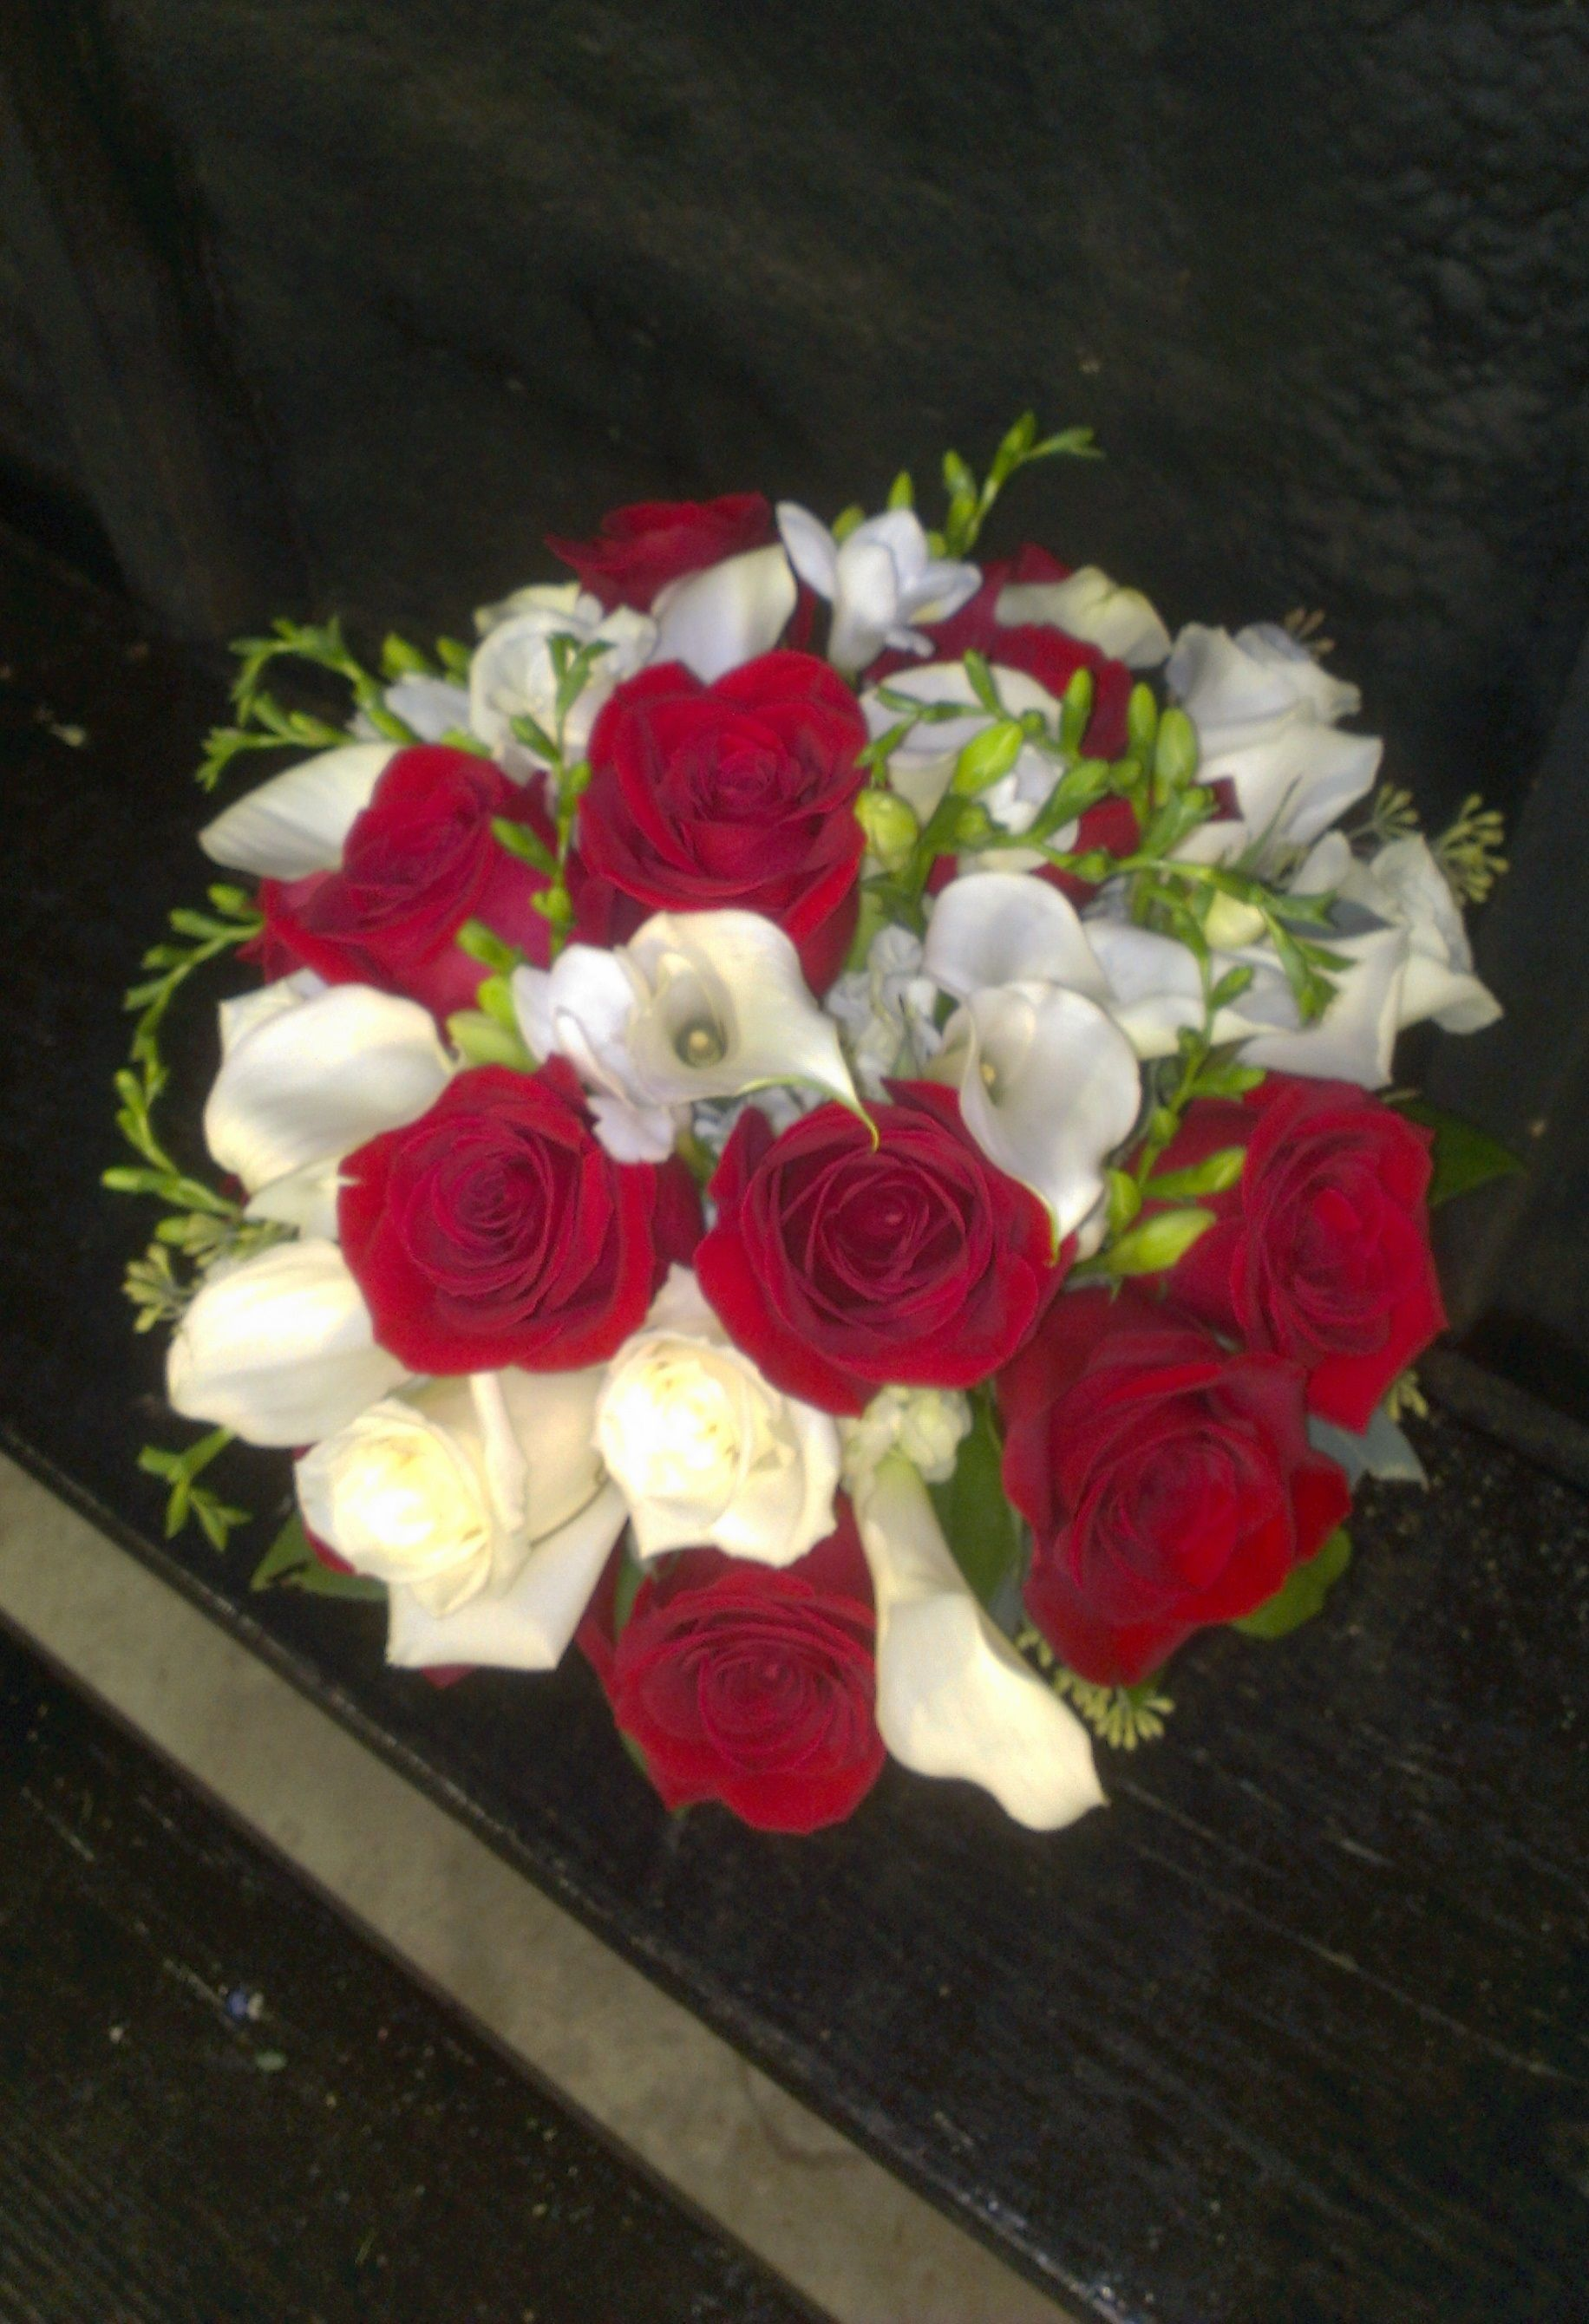 What a beautiful bridal bouquet. A lucky lady will catch this after the wedding! Congrats to everyone! americasflorist.com